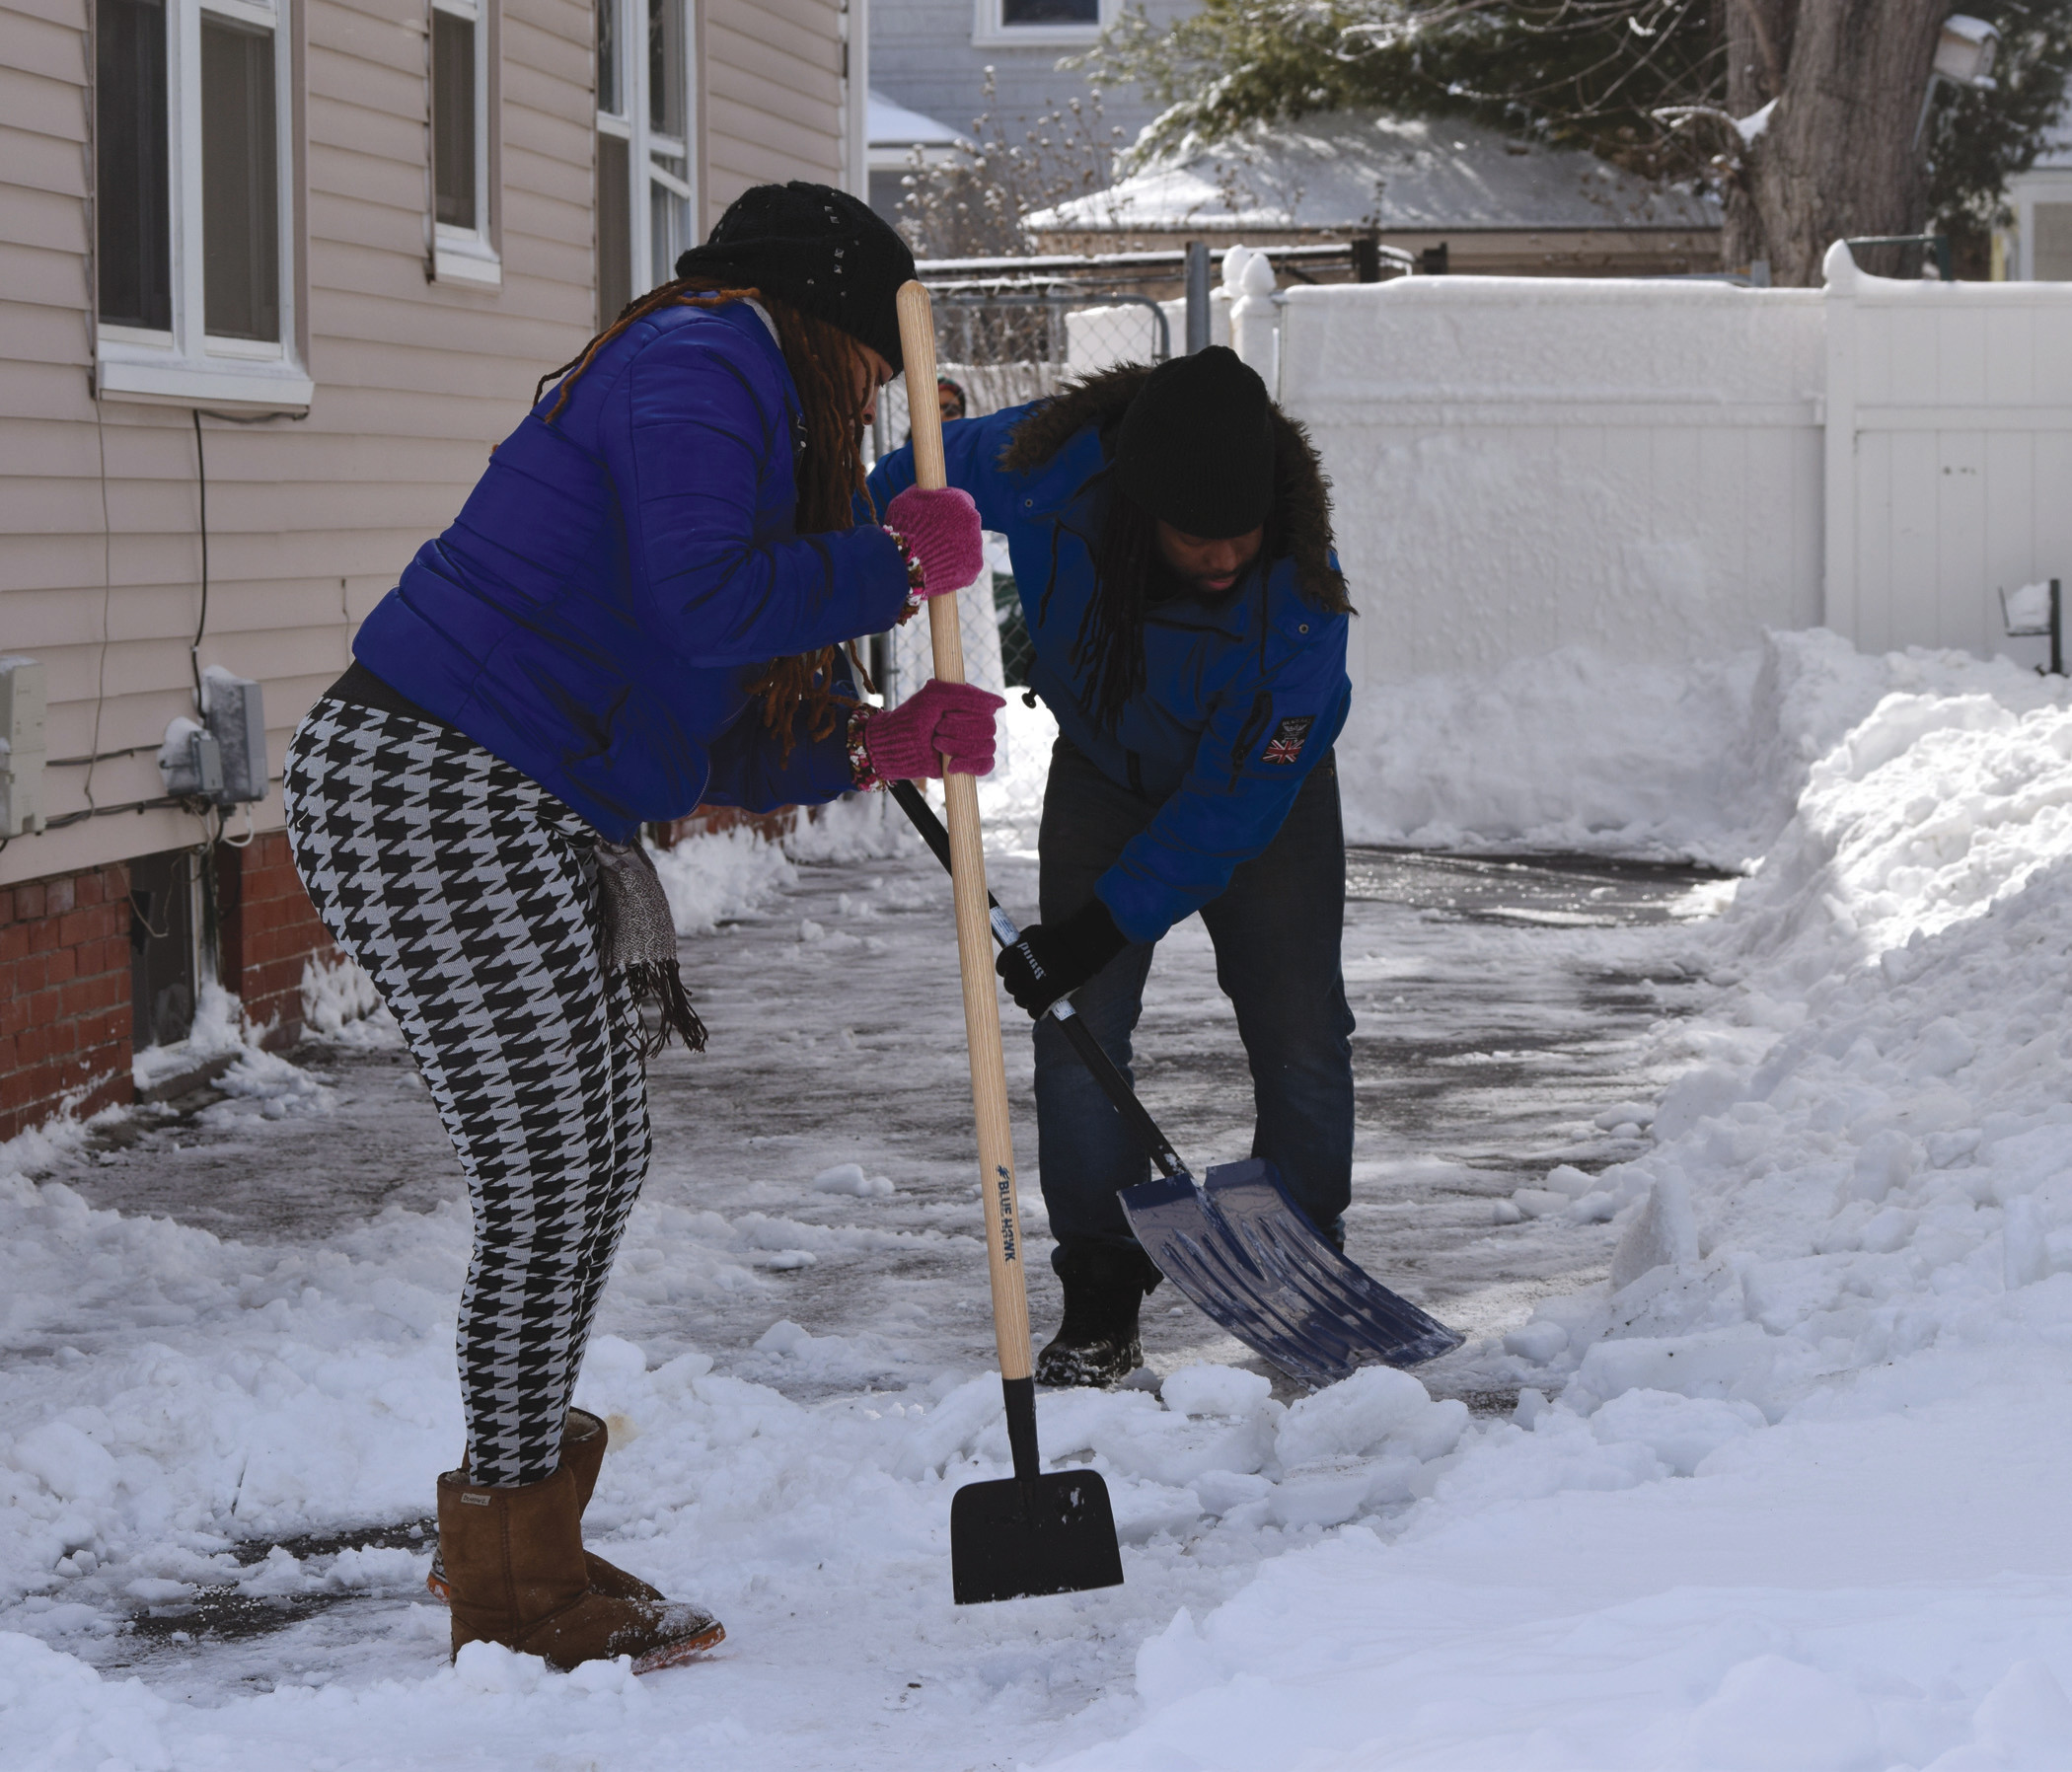 CHIPPING AWAY: Joyce Dragon and Booz Derogene work to clear up a sheet of ice under the snow.